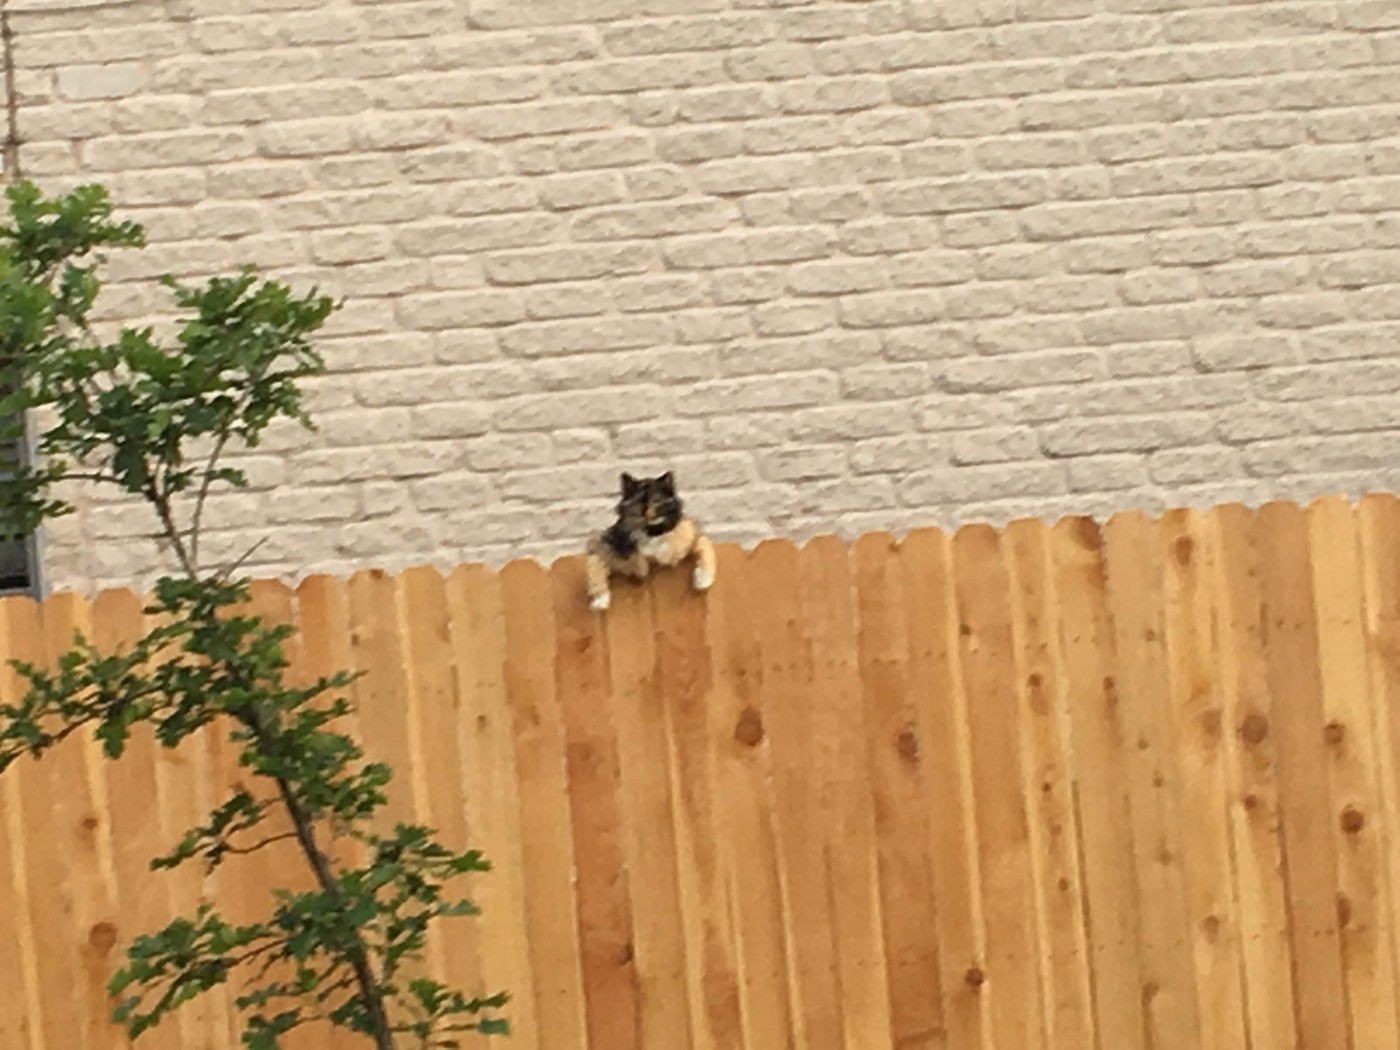 Cat hanging on fence by front paws